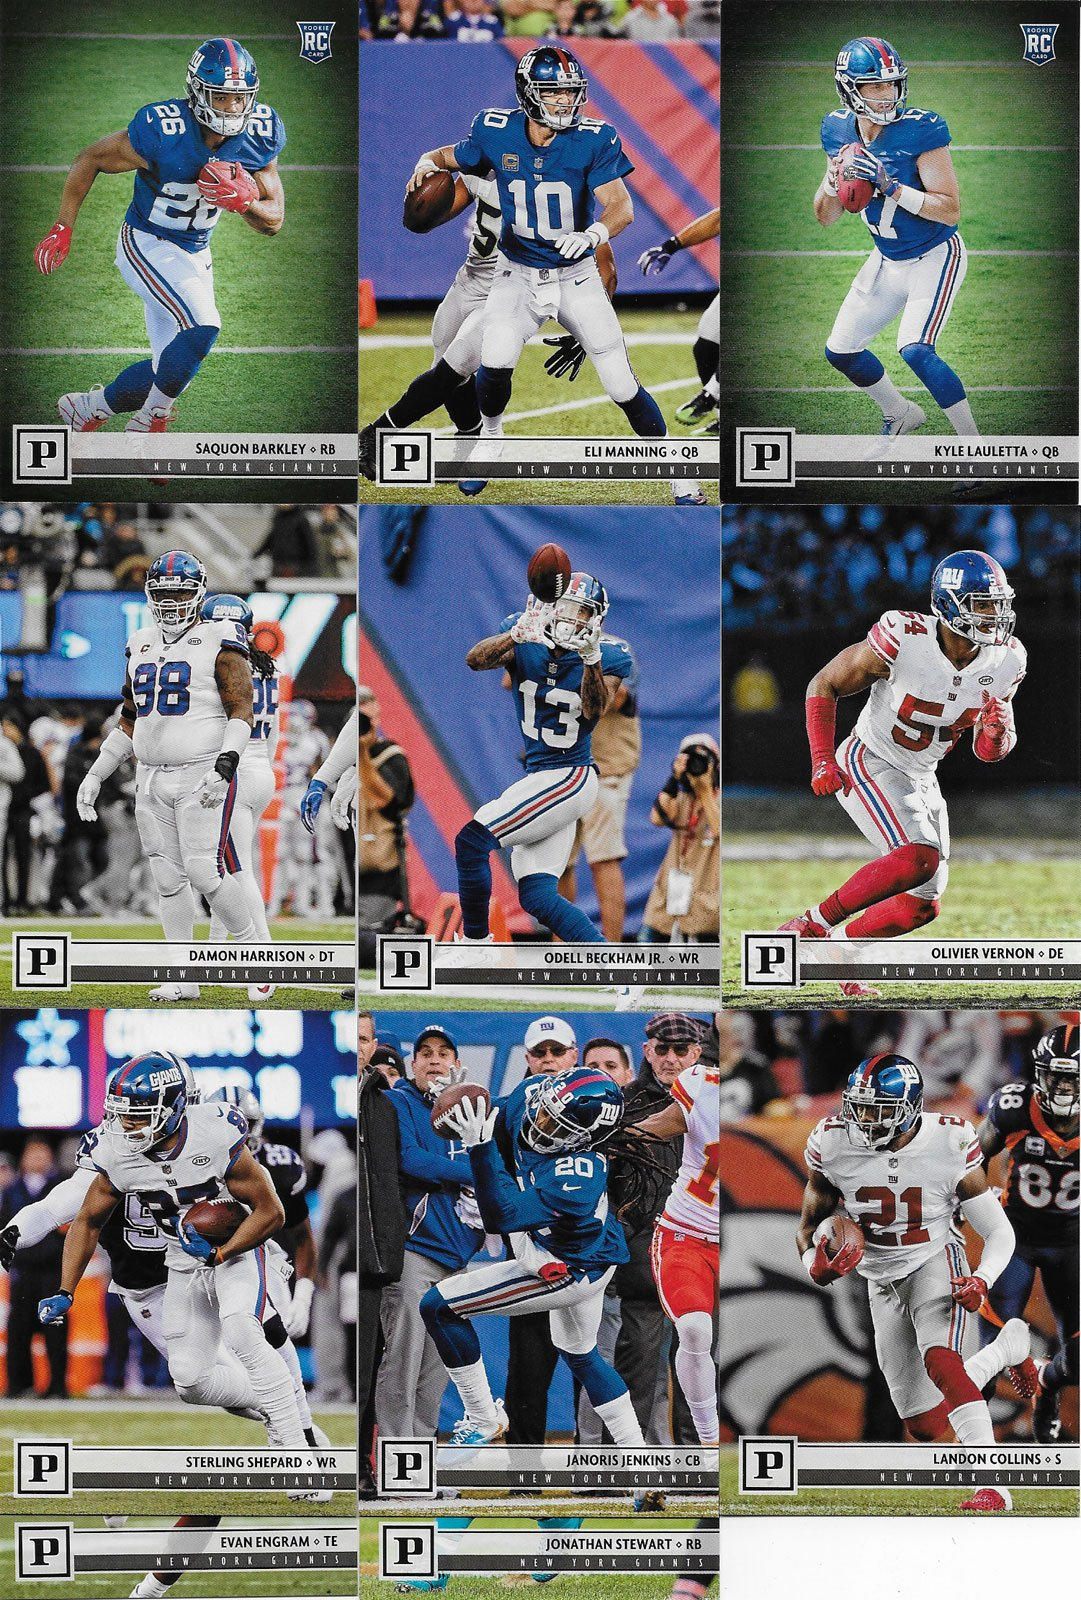 New York Giants 2018 Panini Factory Sealed NFL Football Complete Mint 11 Card Team Set with Eli Manning, Odell Beckham Jr, Rookie cards of Saquon Barkley and Kyle Lauletta plus